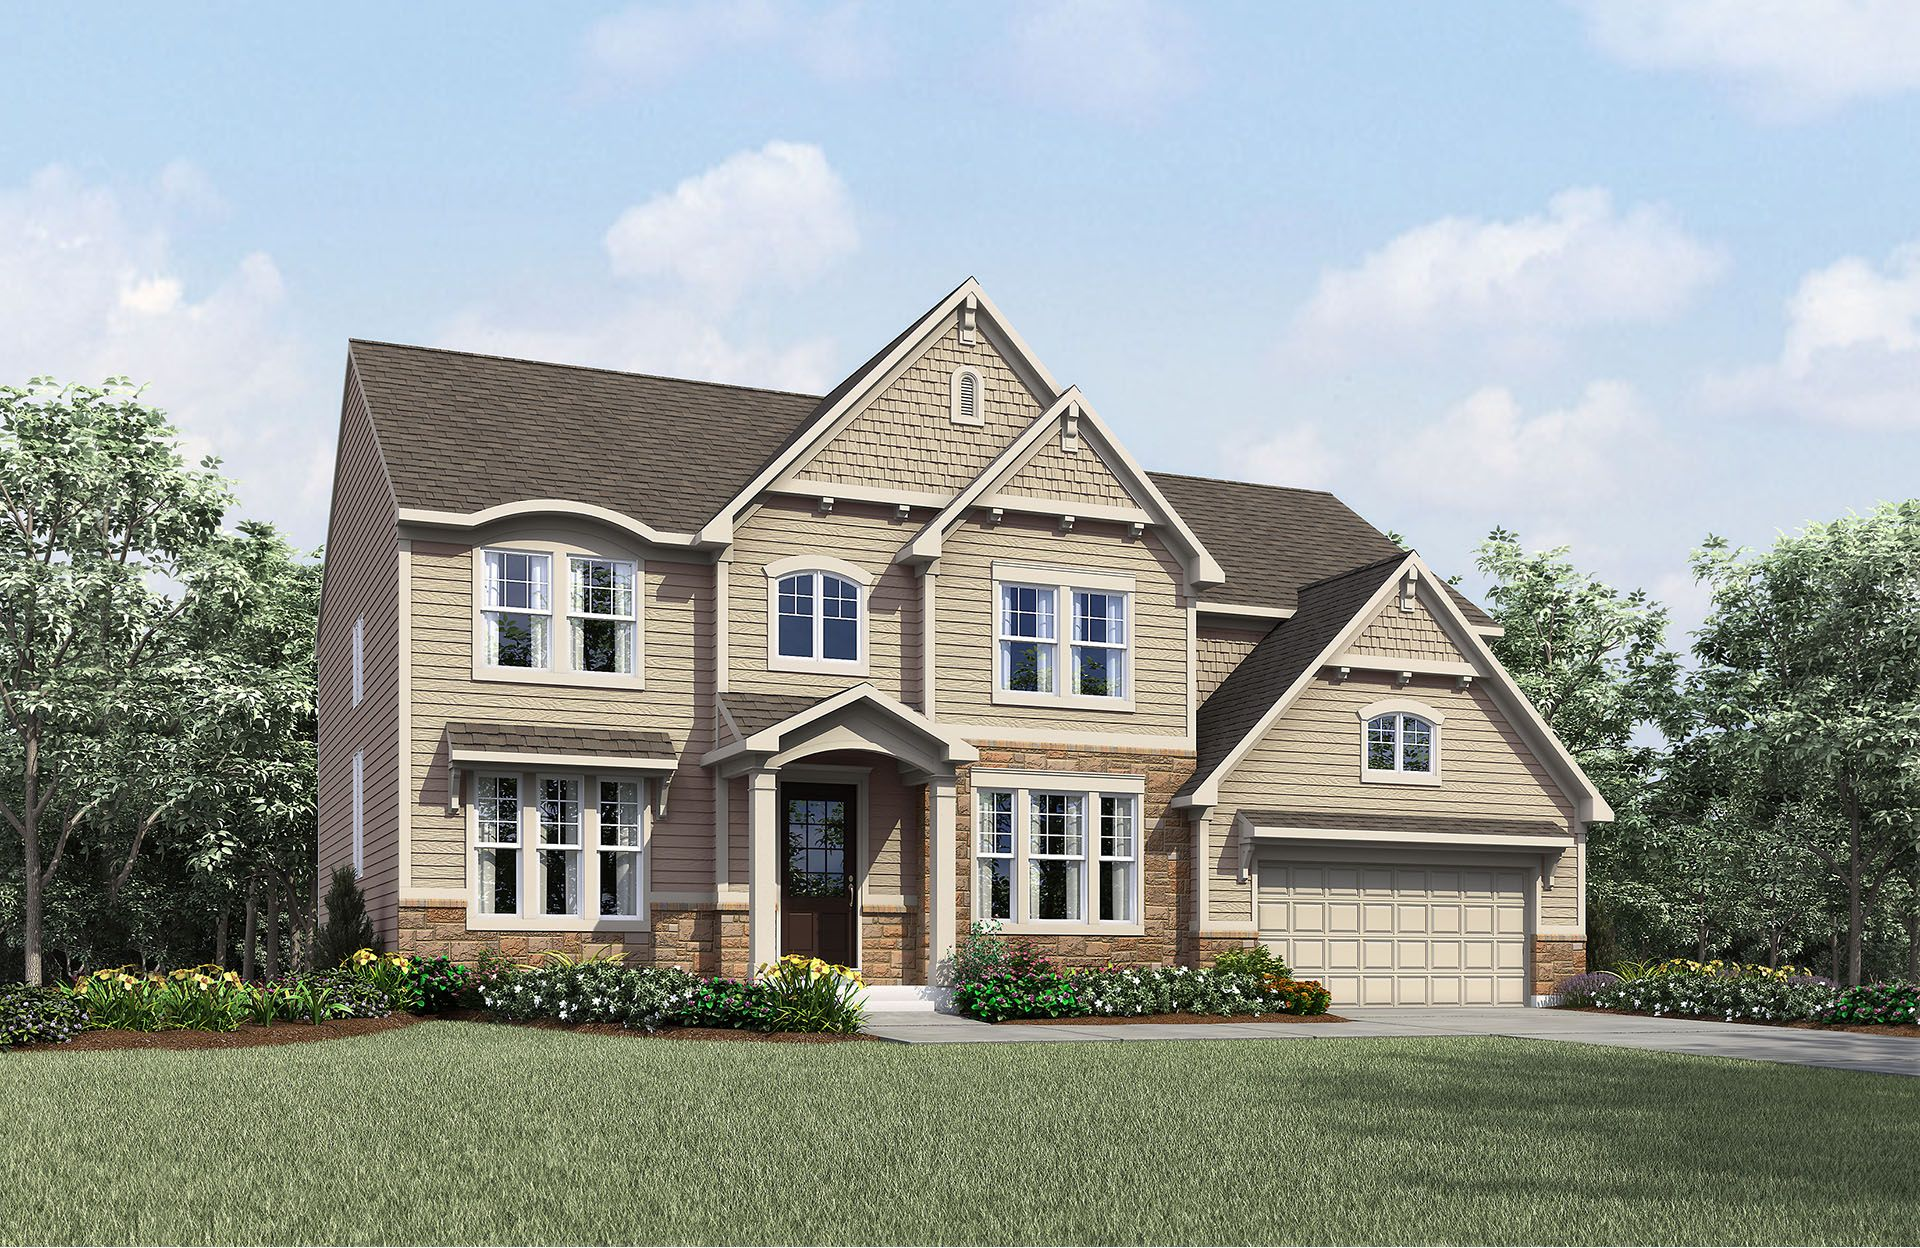 Single Family for Active at Estates At Rocky Pen - Ash Lawn 85 Edgewater Drive Falmouth, Virginia 22405 United States